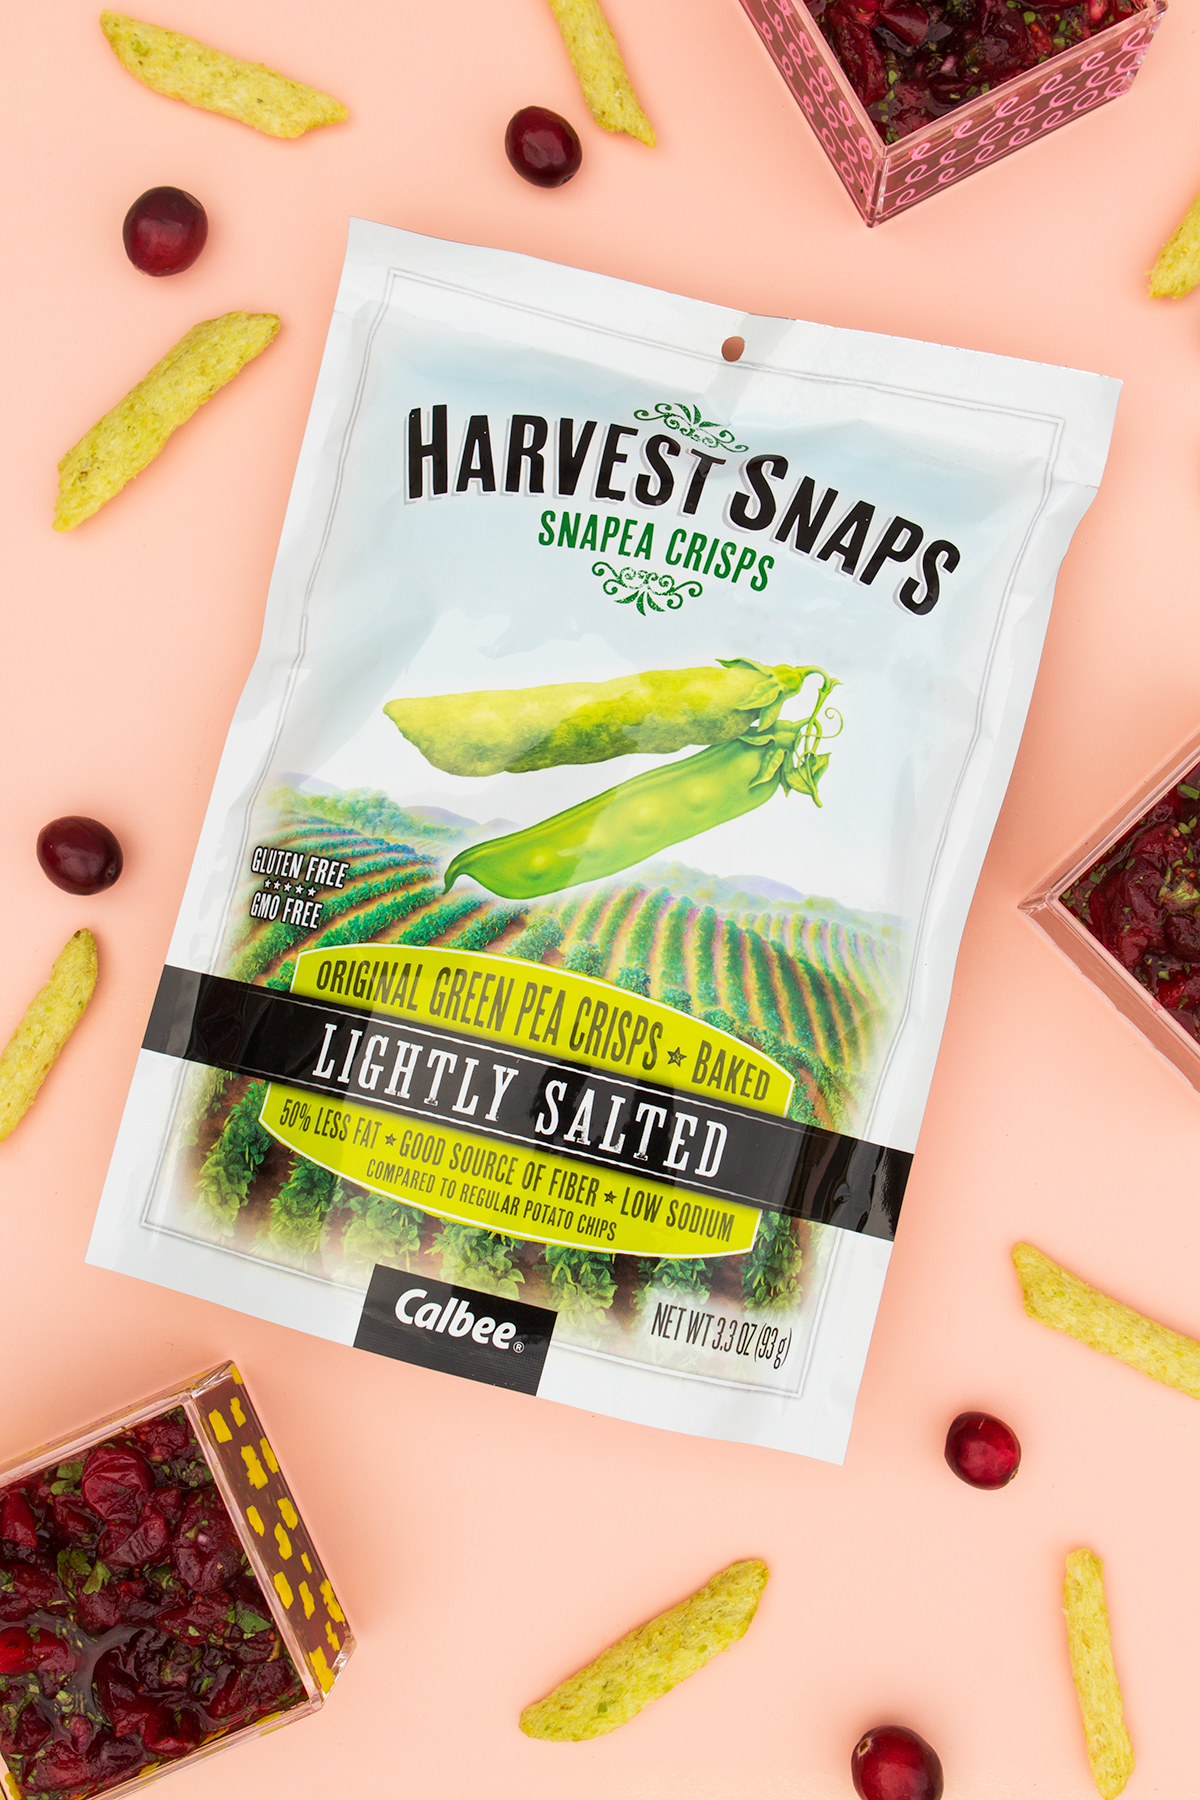 Serve this sweet and savory fresh cranberry salsa with @HarvestSnaps at your holiday party! #harvestsnapslove